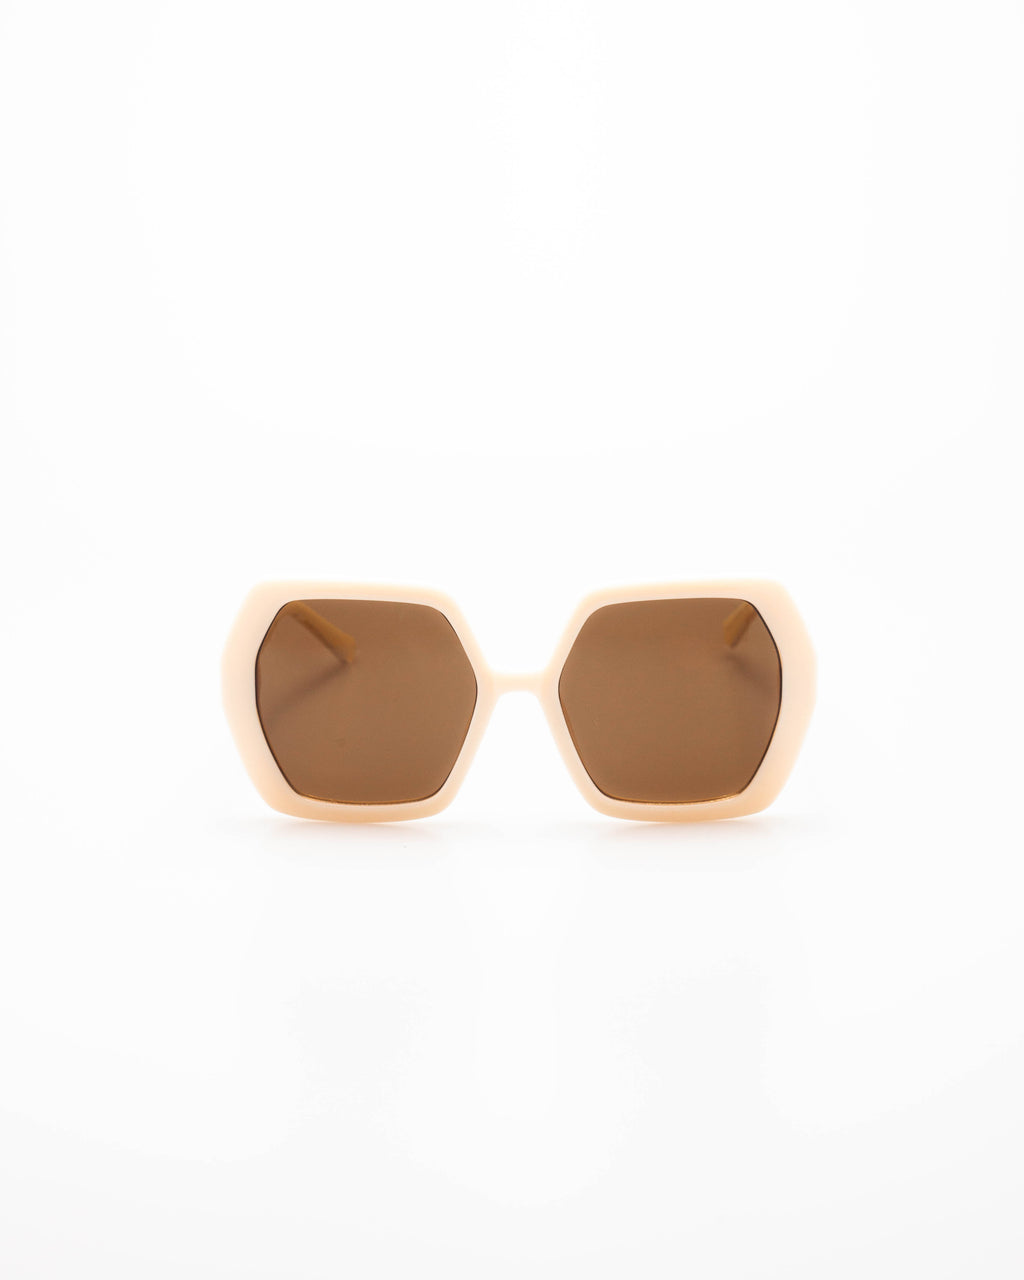 LUEUR · BEIGE BROWN